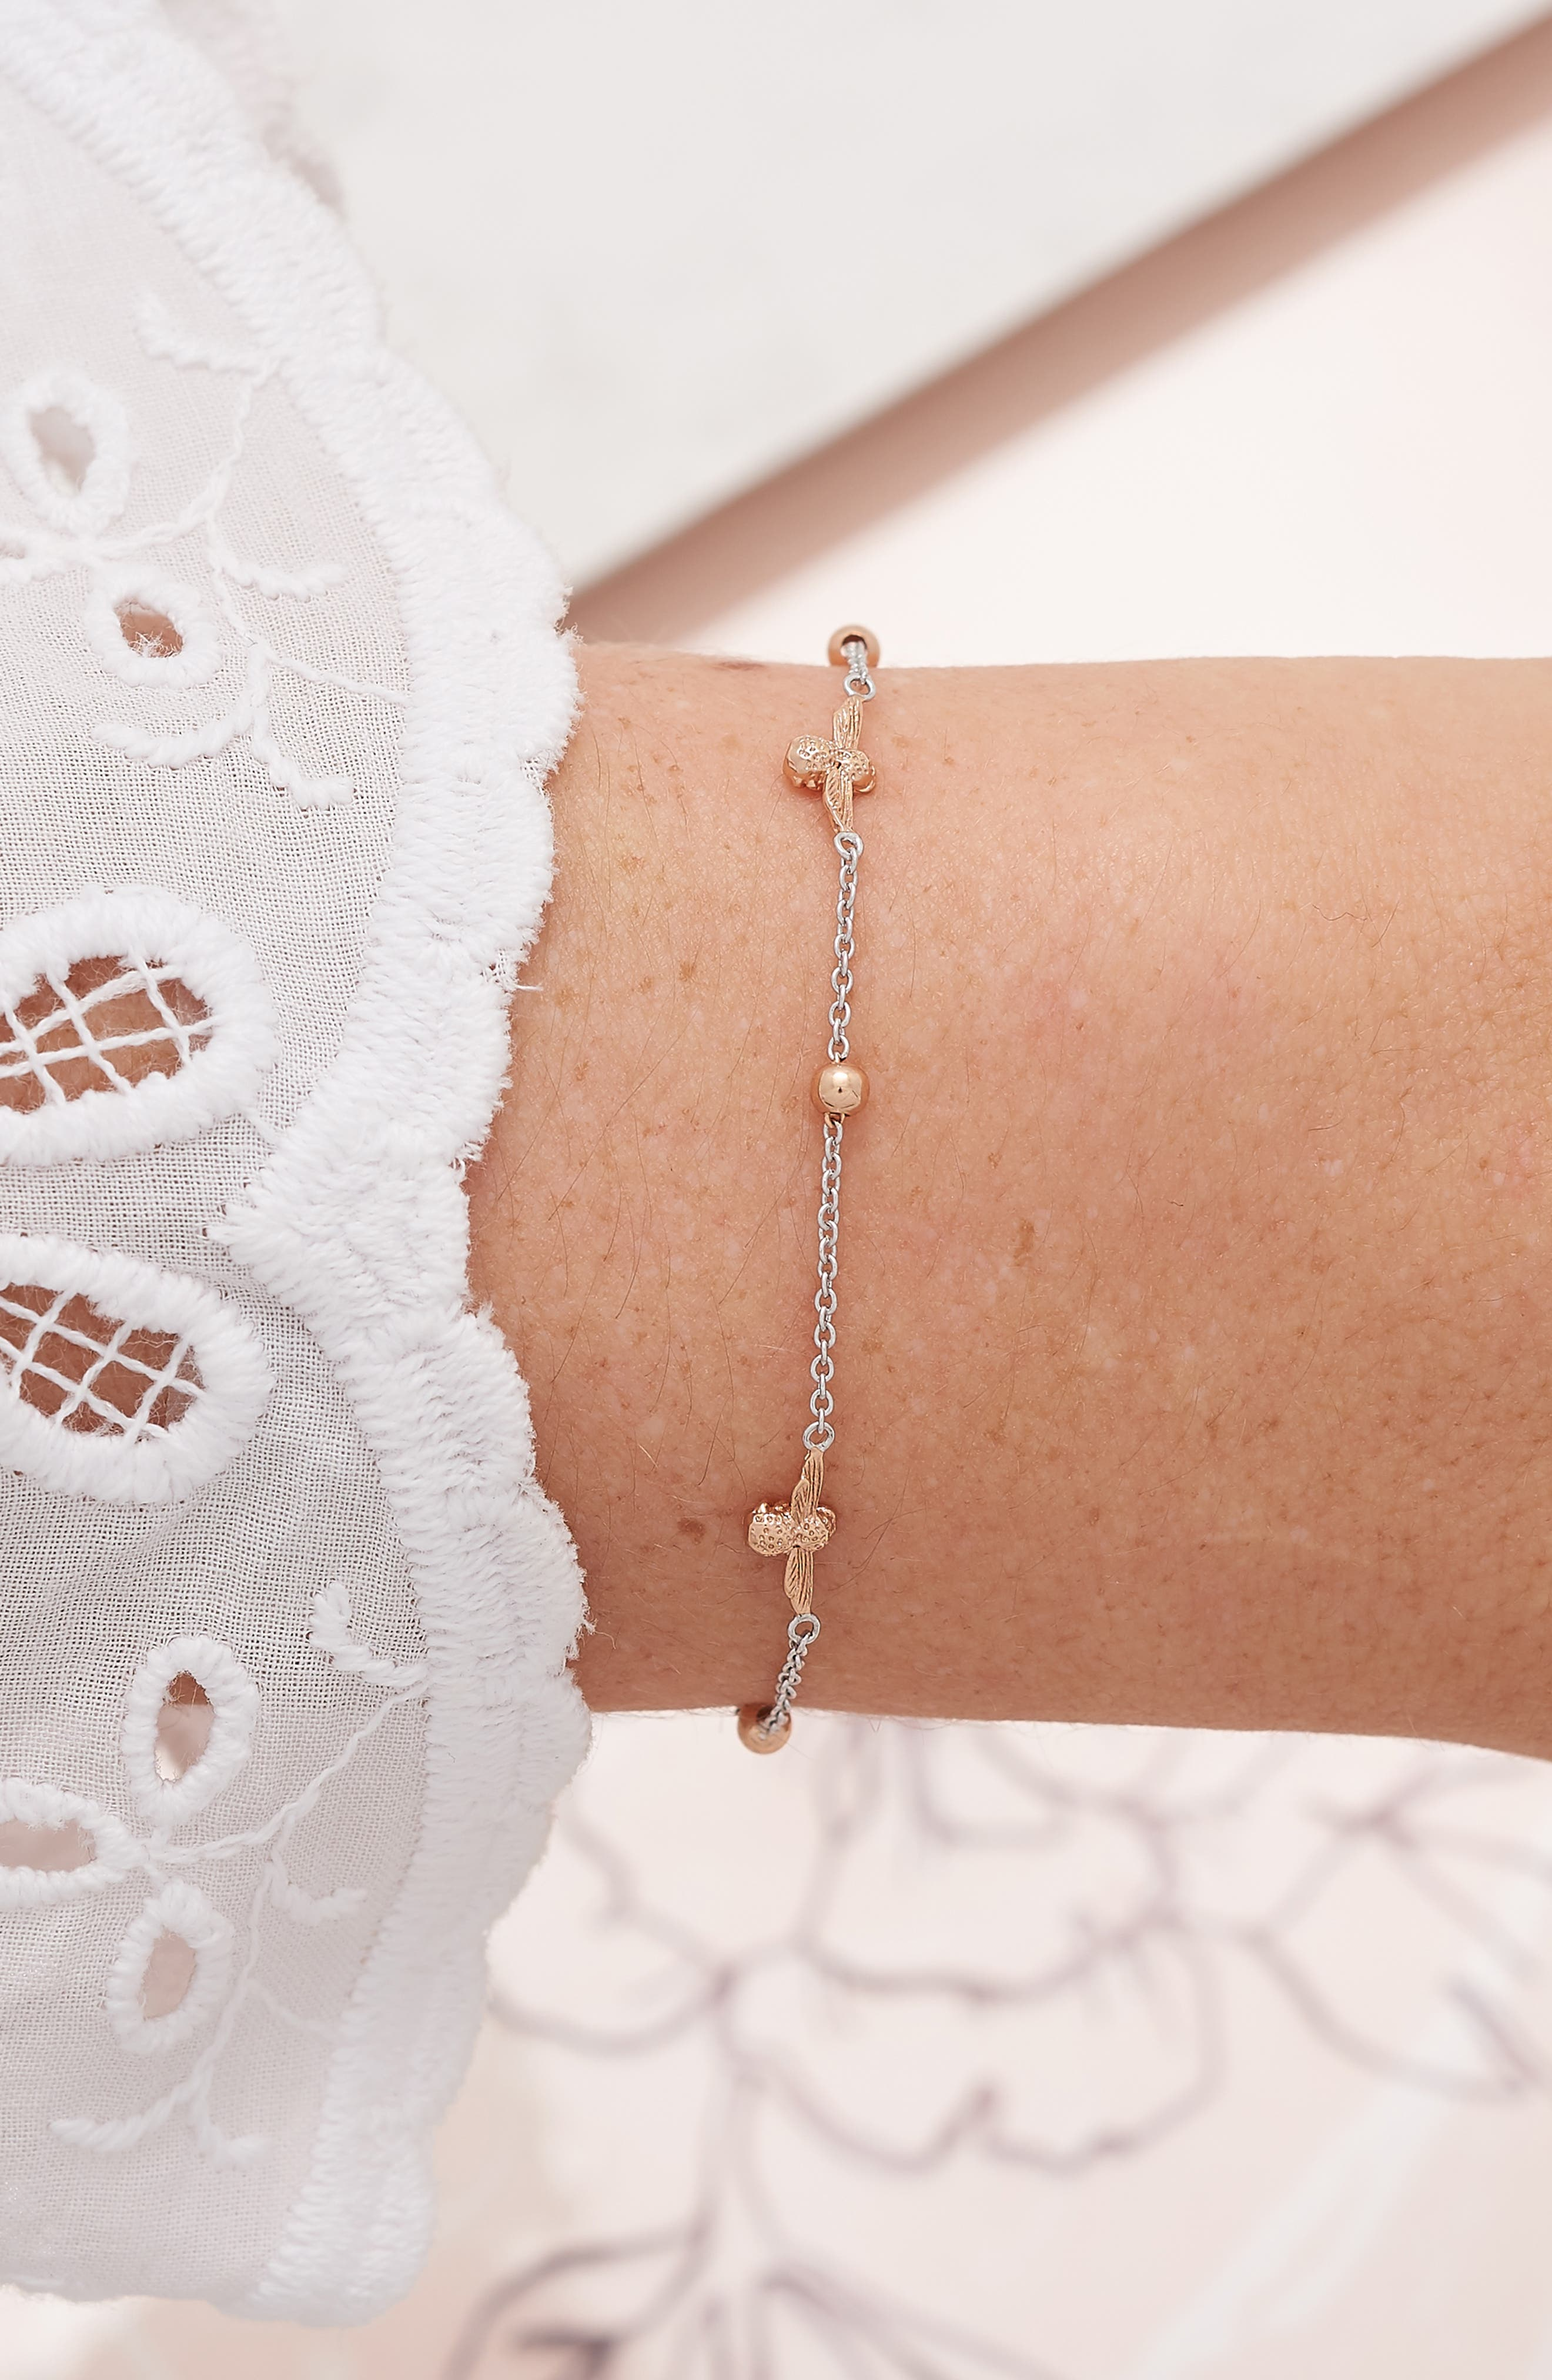 Queen Bee Ball Chain Bracelet,                             Alternate thumbnail 2, color,                             SILVER/ ROSE GOLD